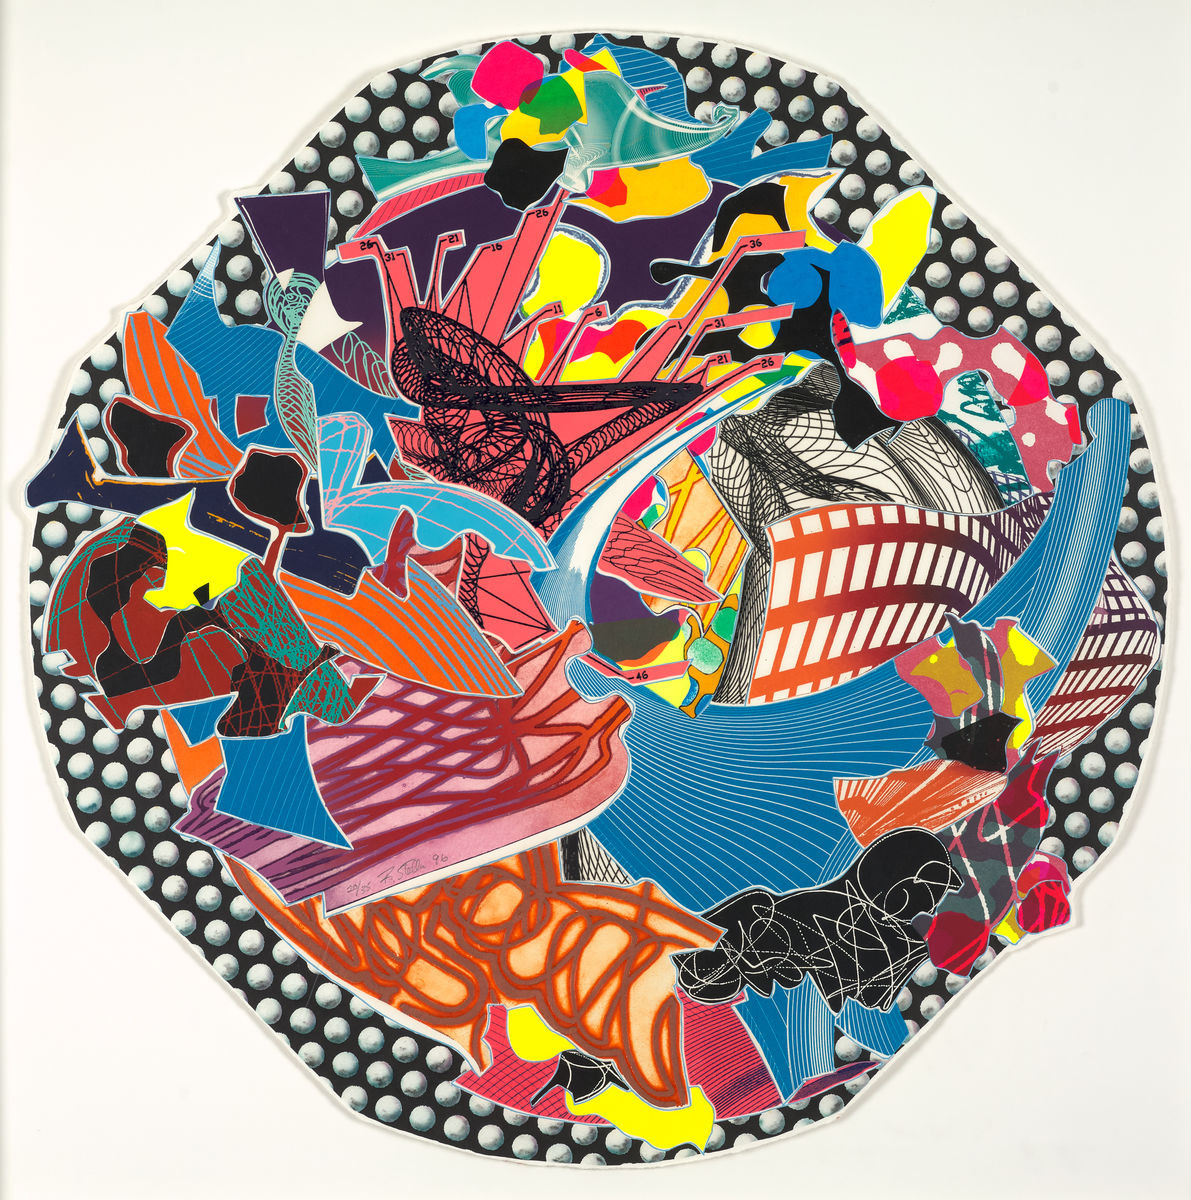 Frank Stella (American, born 1936), Fattipuff, 1996. Lithograph, screenprint, etching, aquatint, and relief on white TGL handmade paper, diam. Collection of Preston H. Haskell, Class of 1960. © Frank Stella/Artists Rights Society (ARS), New York